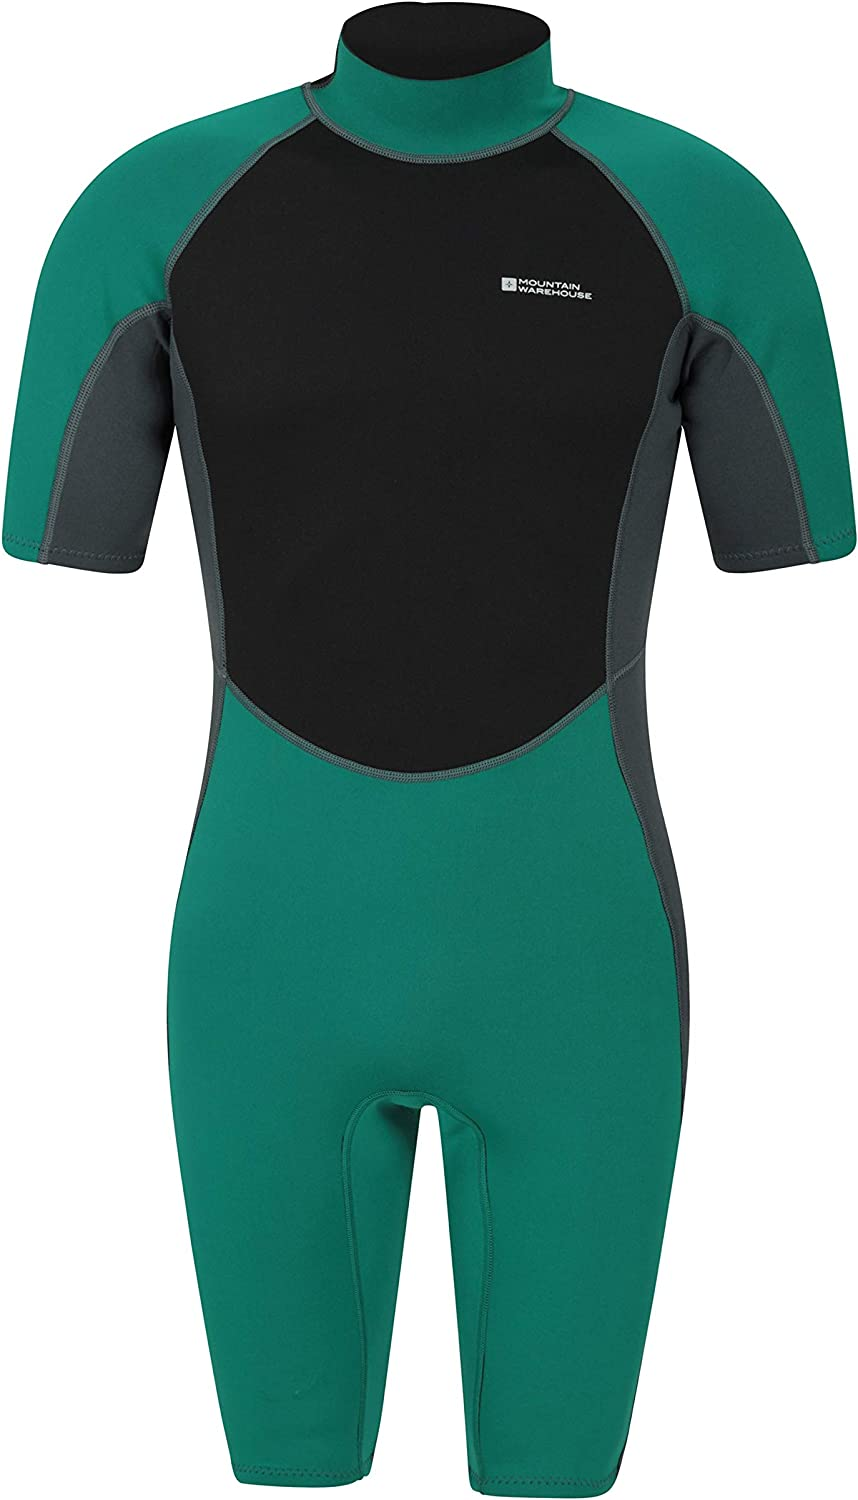 Perfect for Diving Contour Fit One Piece Surf Suit Mountain Warehouse Shorty Mens Wetsuit Easy Glide Zip Neoprene Swimming Wet Suit